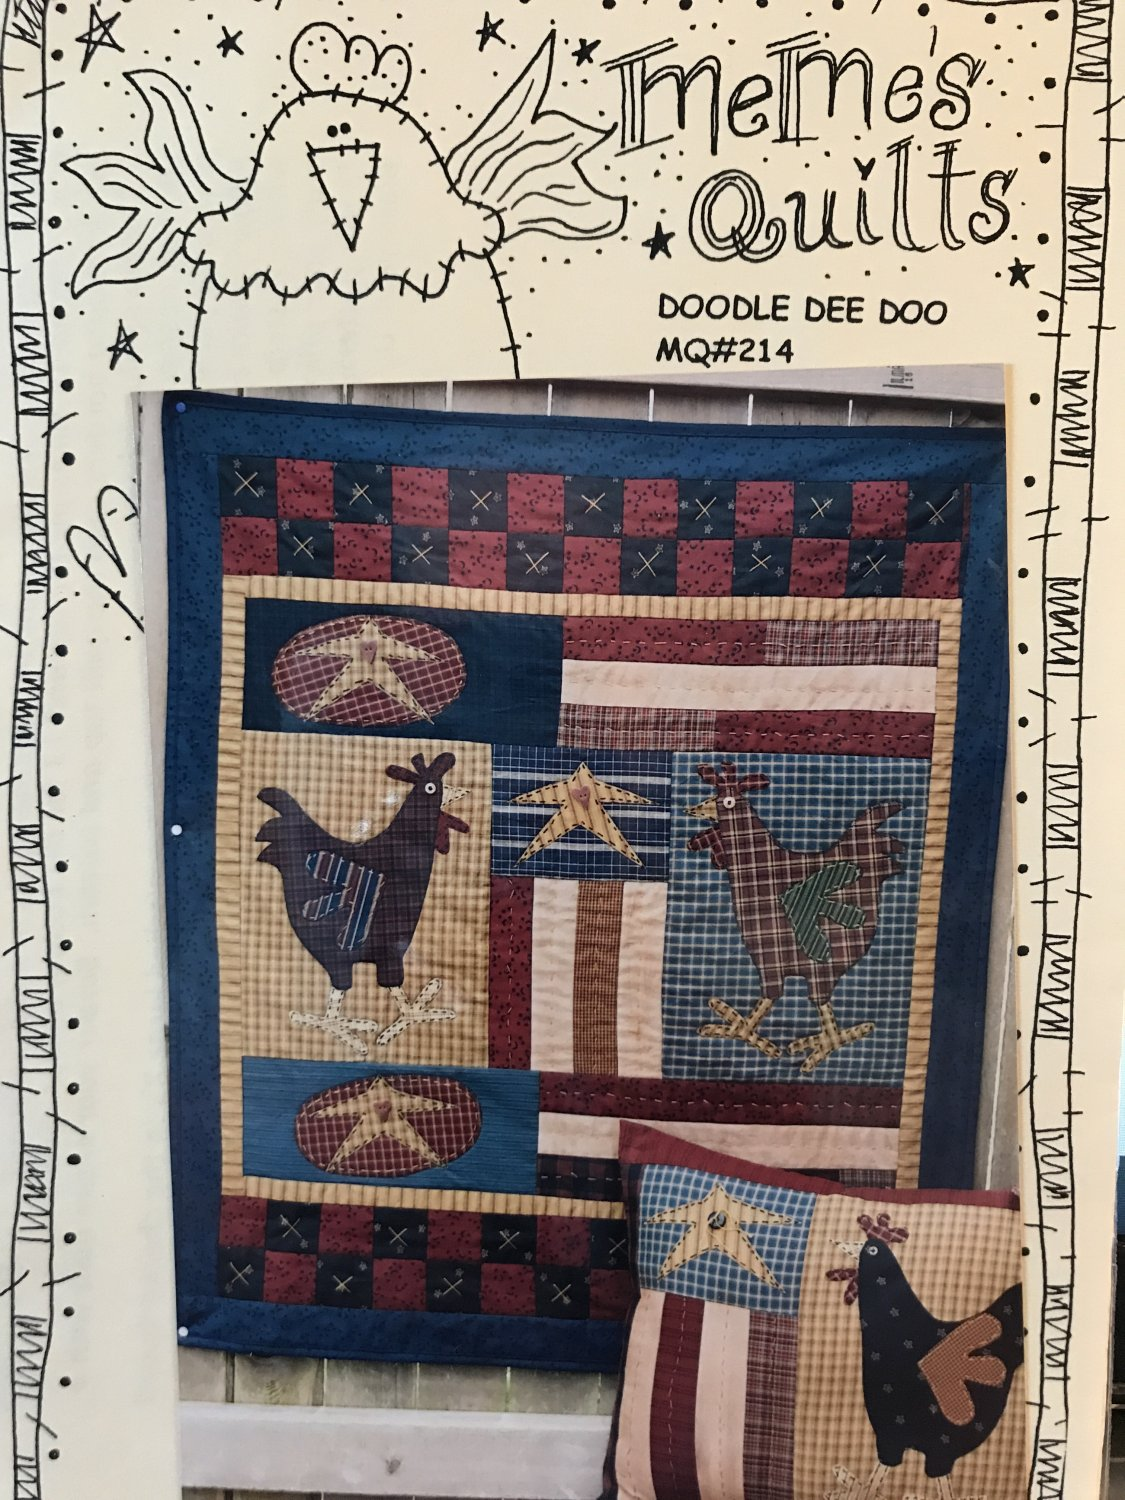 Meme's Quilts Doodle Dee Doo applique quilt Wall Hanging  & Pillow sewing pattern MQ#214